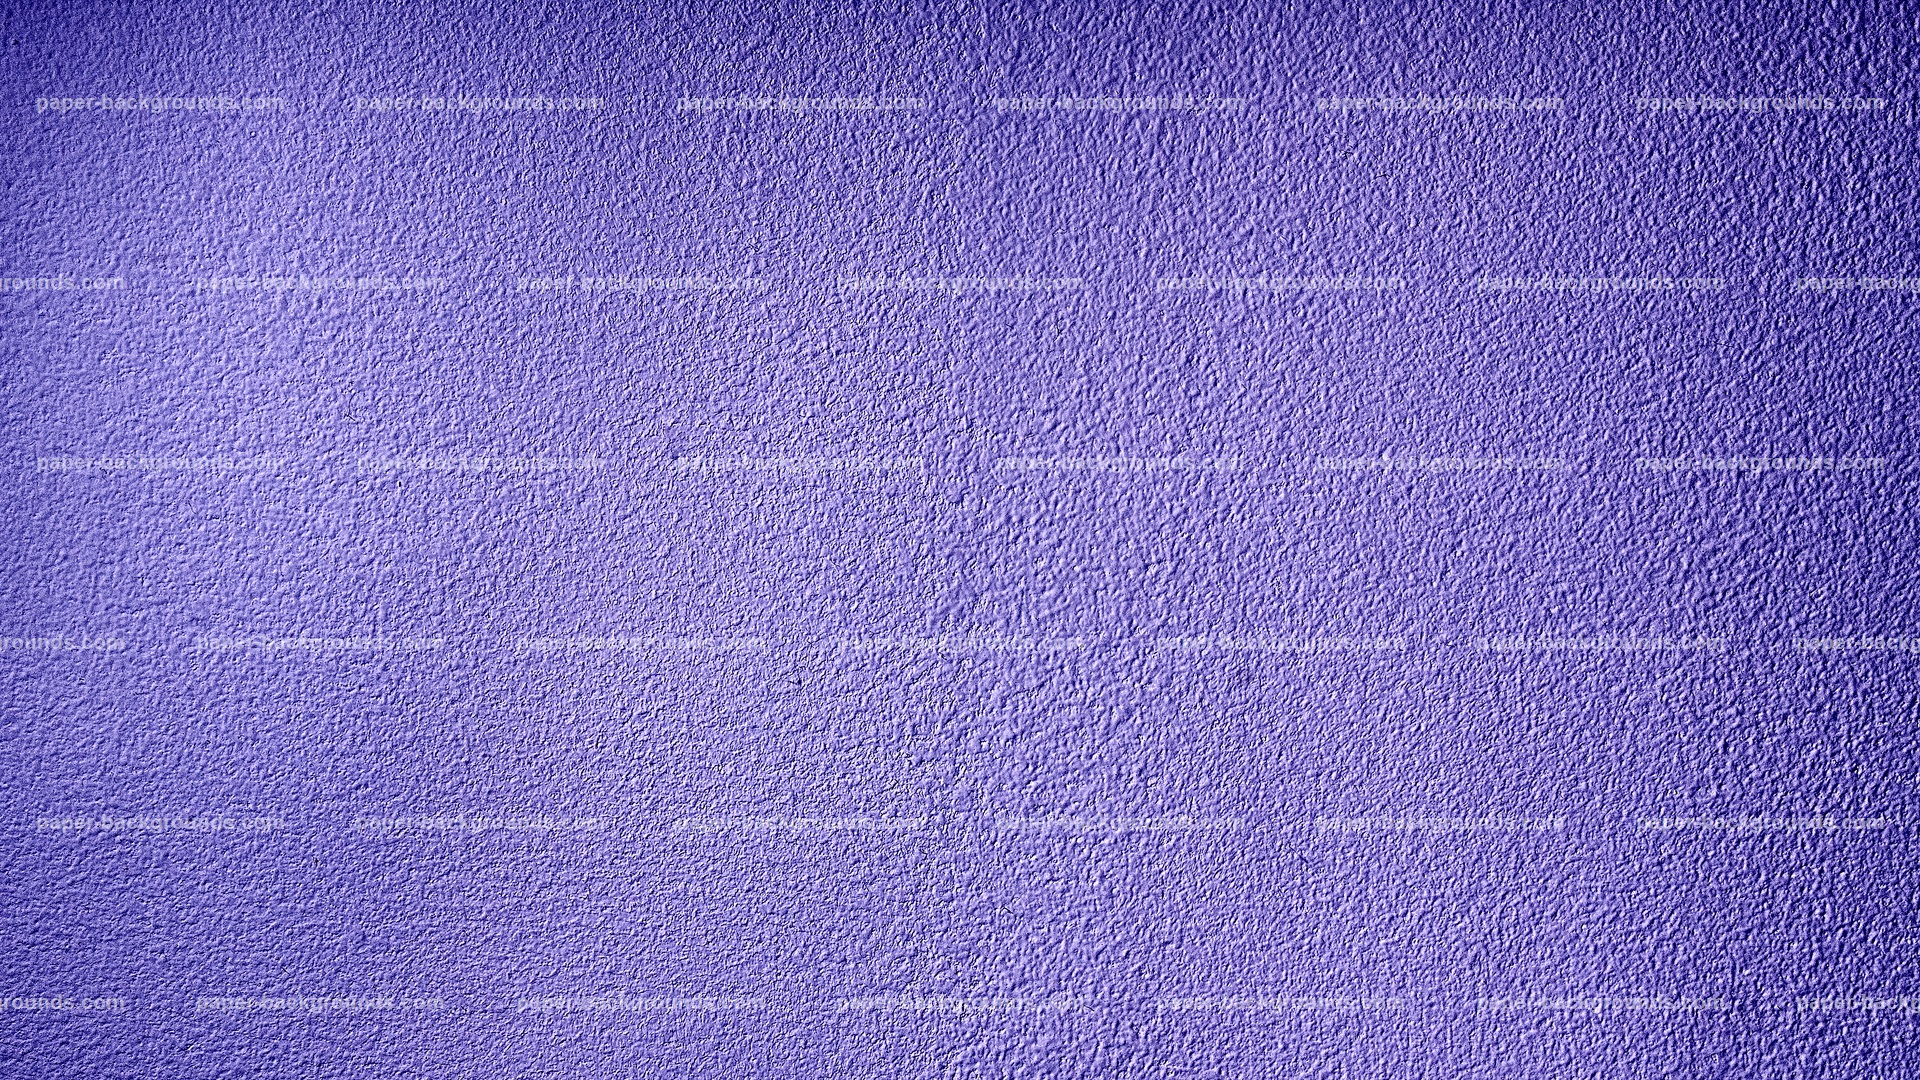 Blue Wall Texture Background Image HD